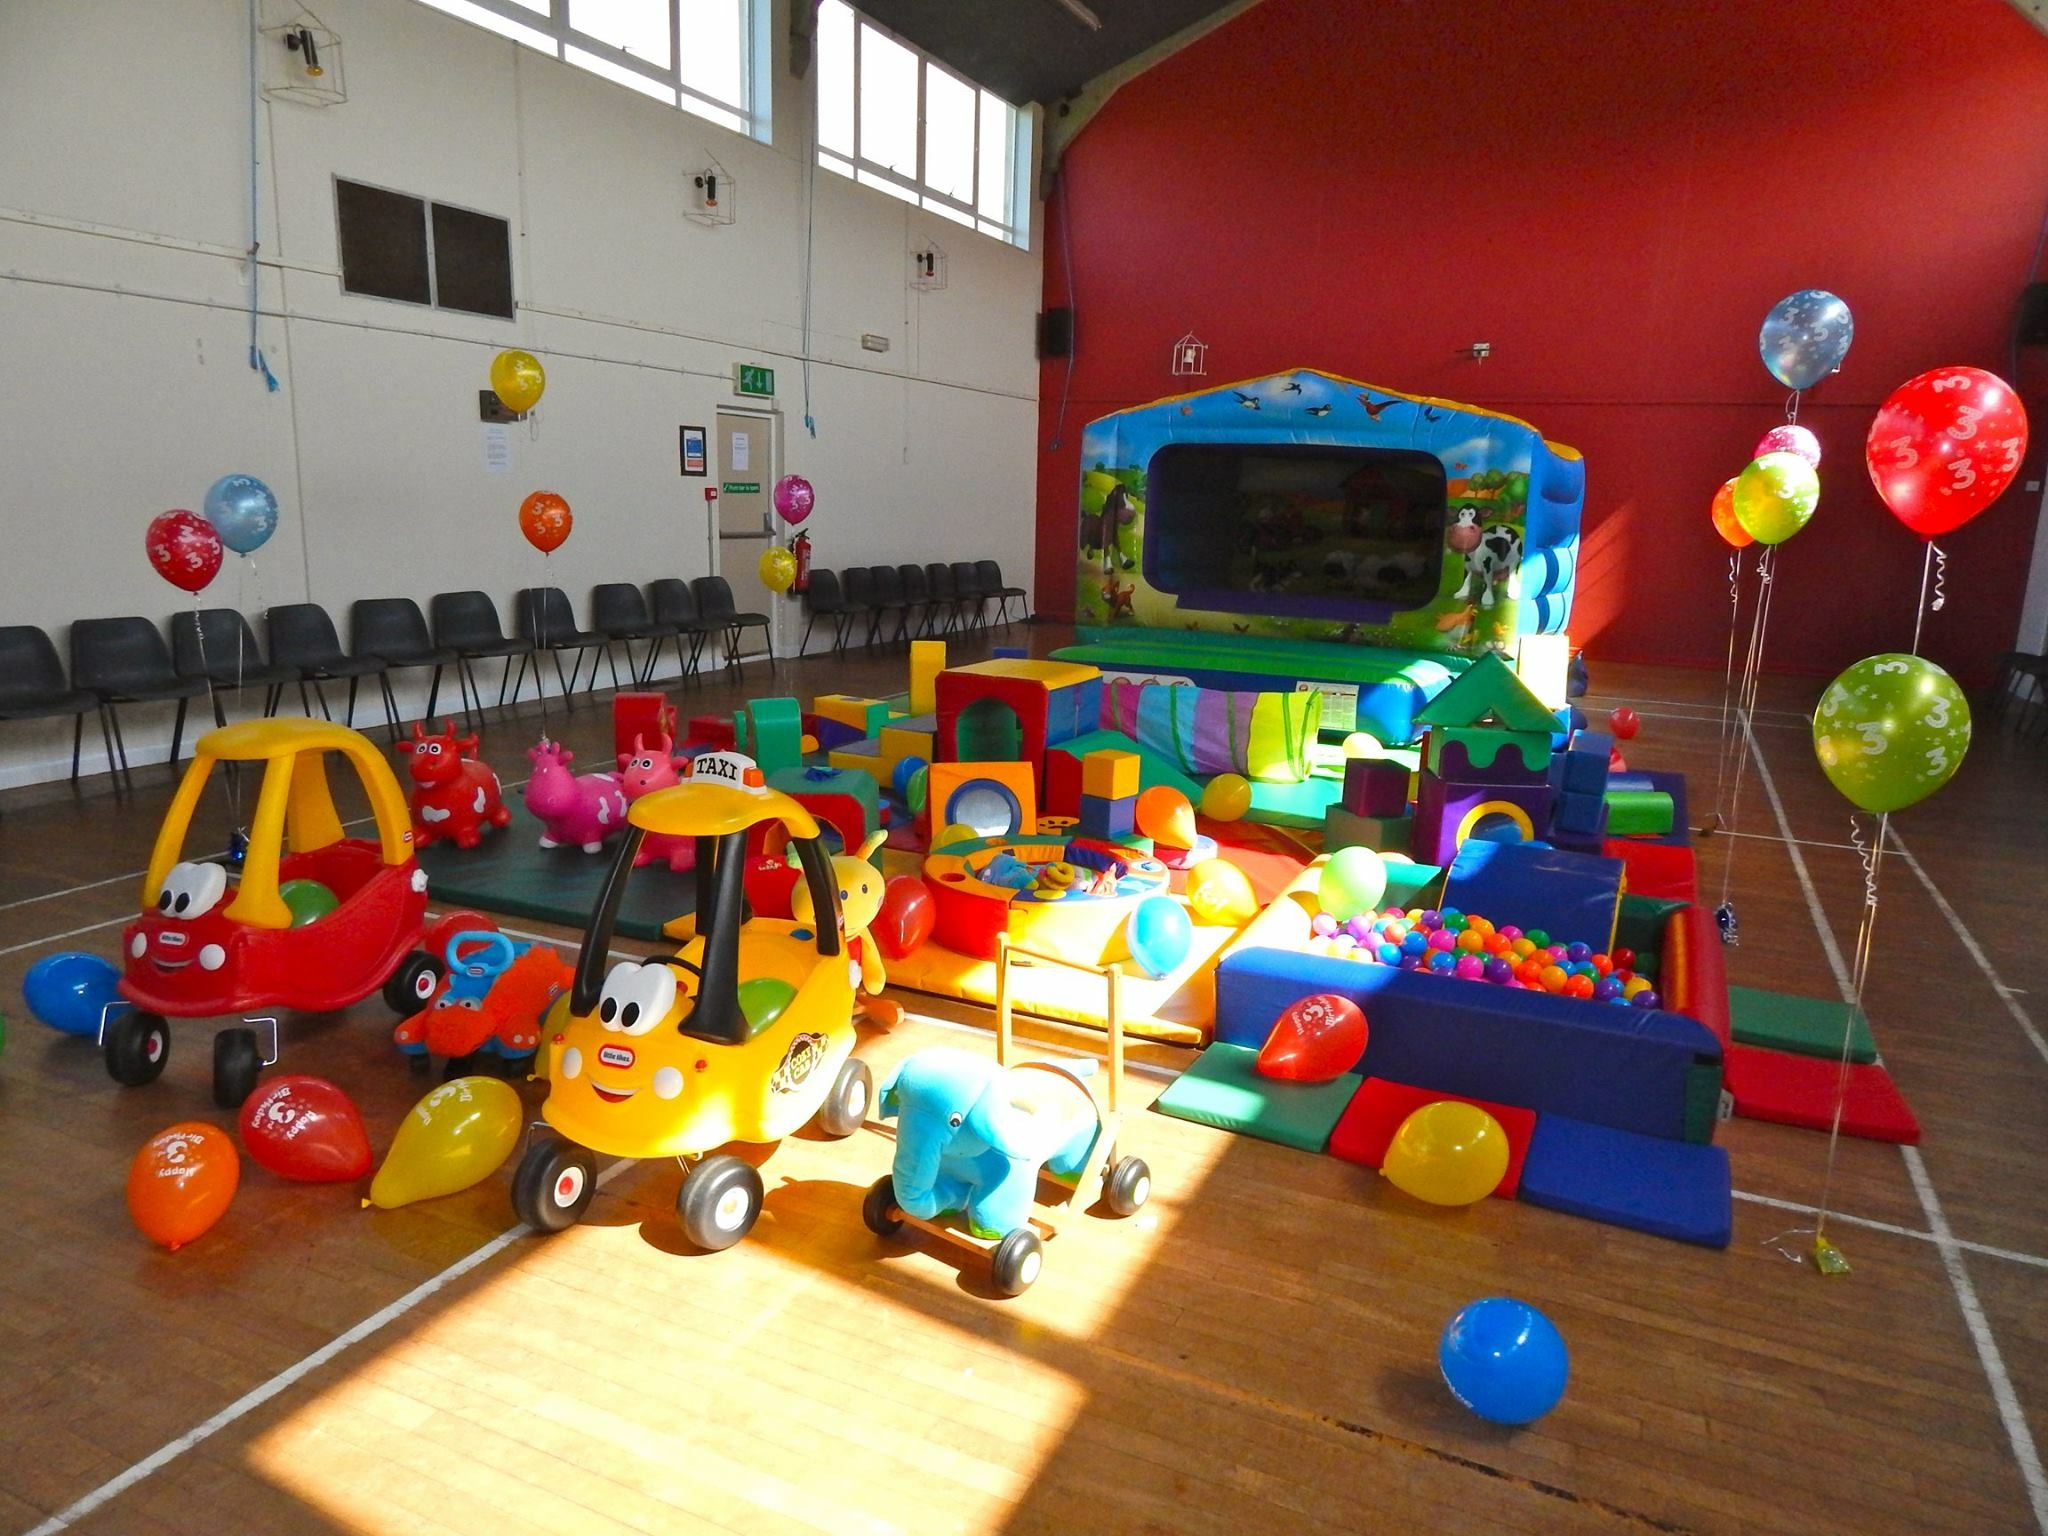 Soft play parties for children - West Cornwall, Penzance